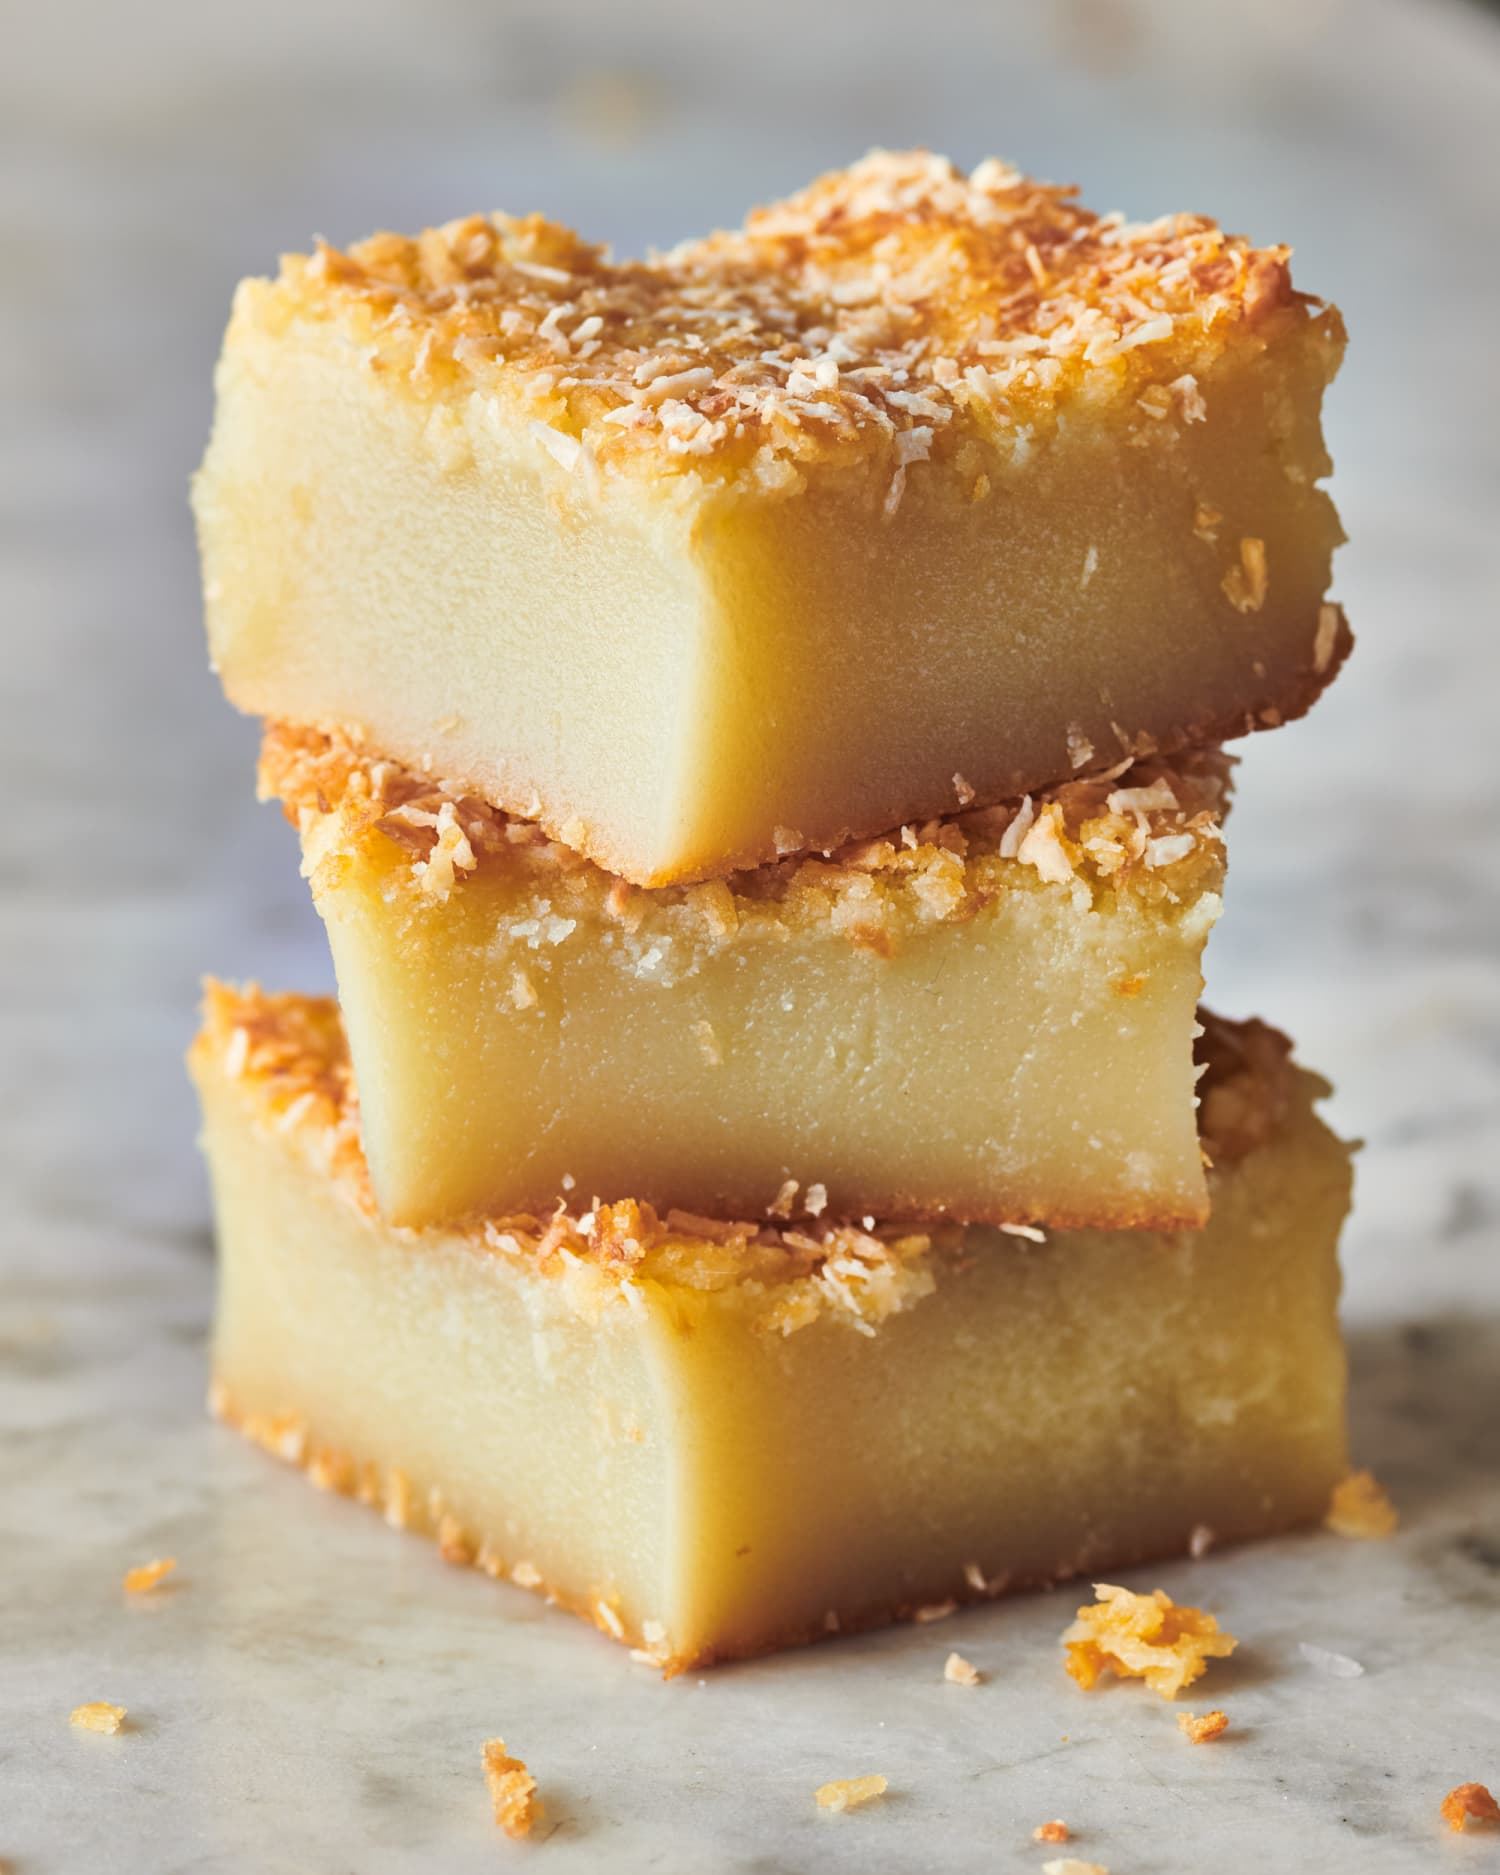 After Years of Tinkering, I Finally Created My Perfect Butter Mochi Recipe (It Has the Most Magical Crust)